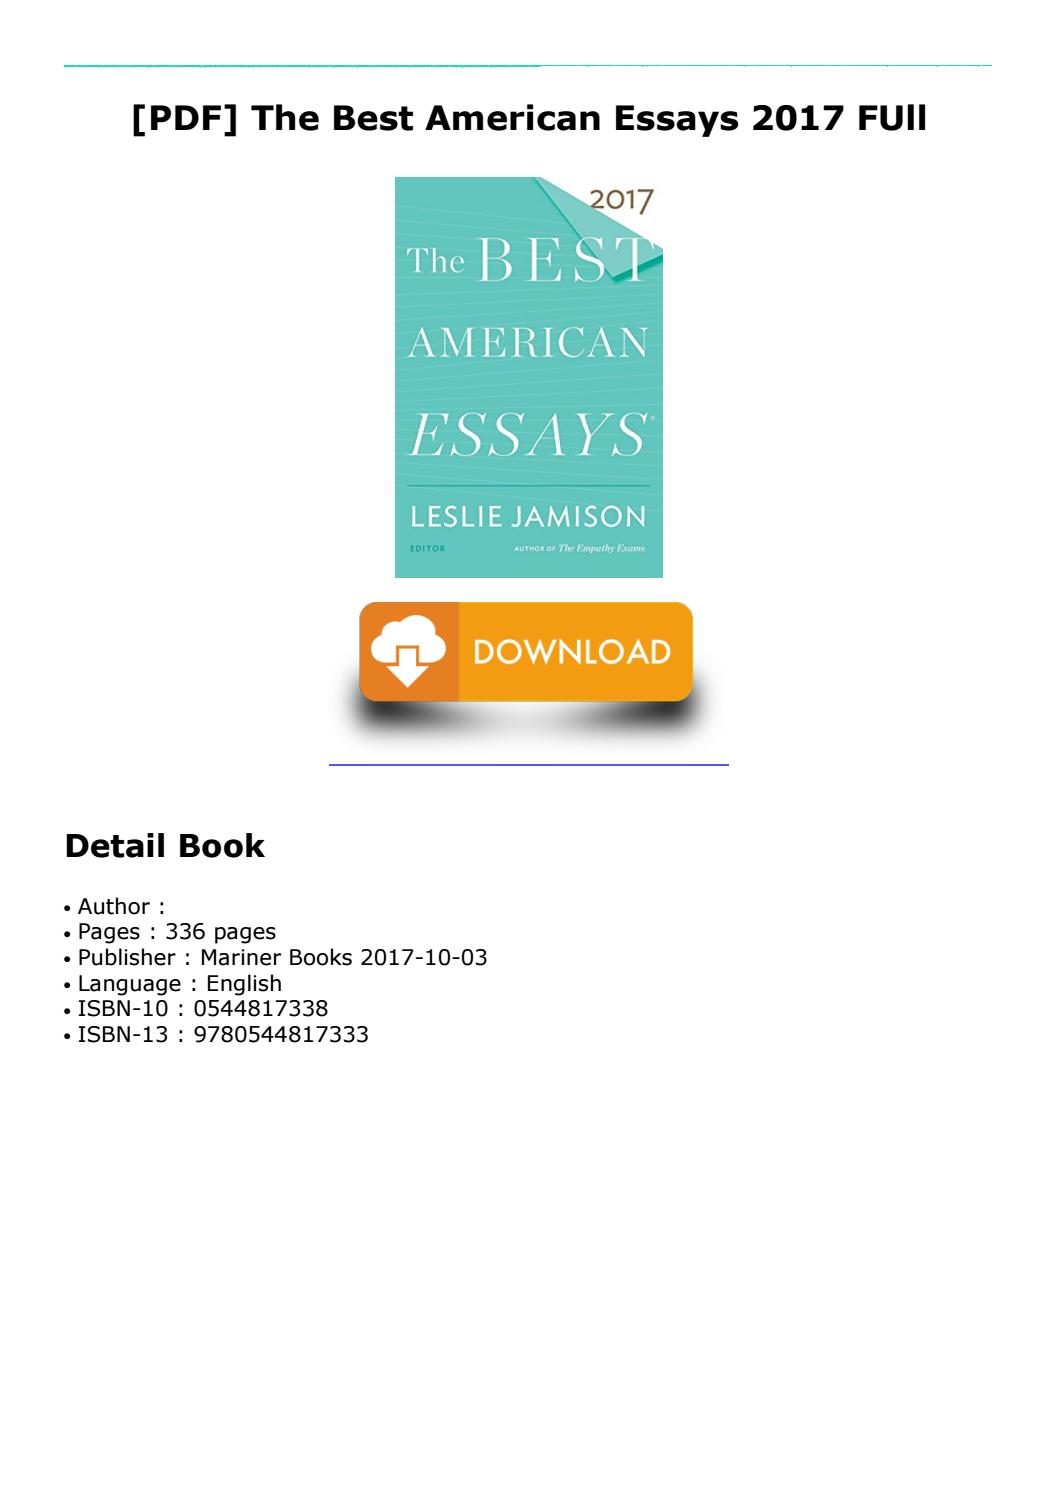 009 Best American Essays Page 1 Essay Astounding 2017 Submissions Pdf Free Download Full